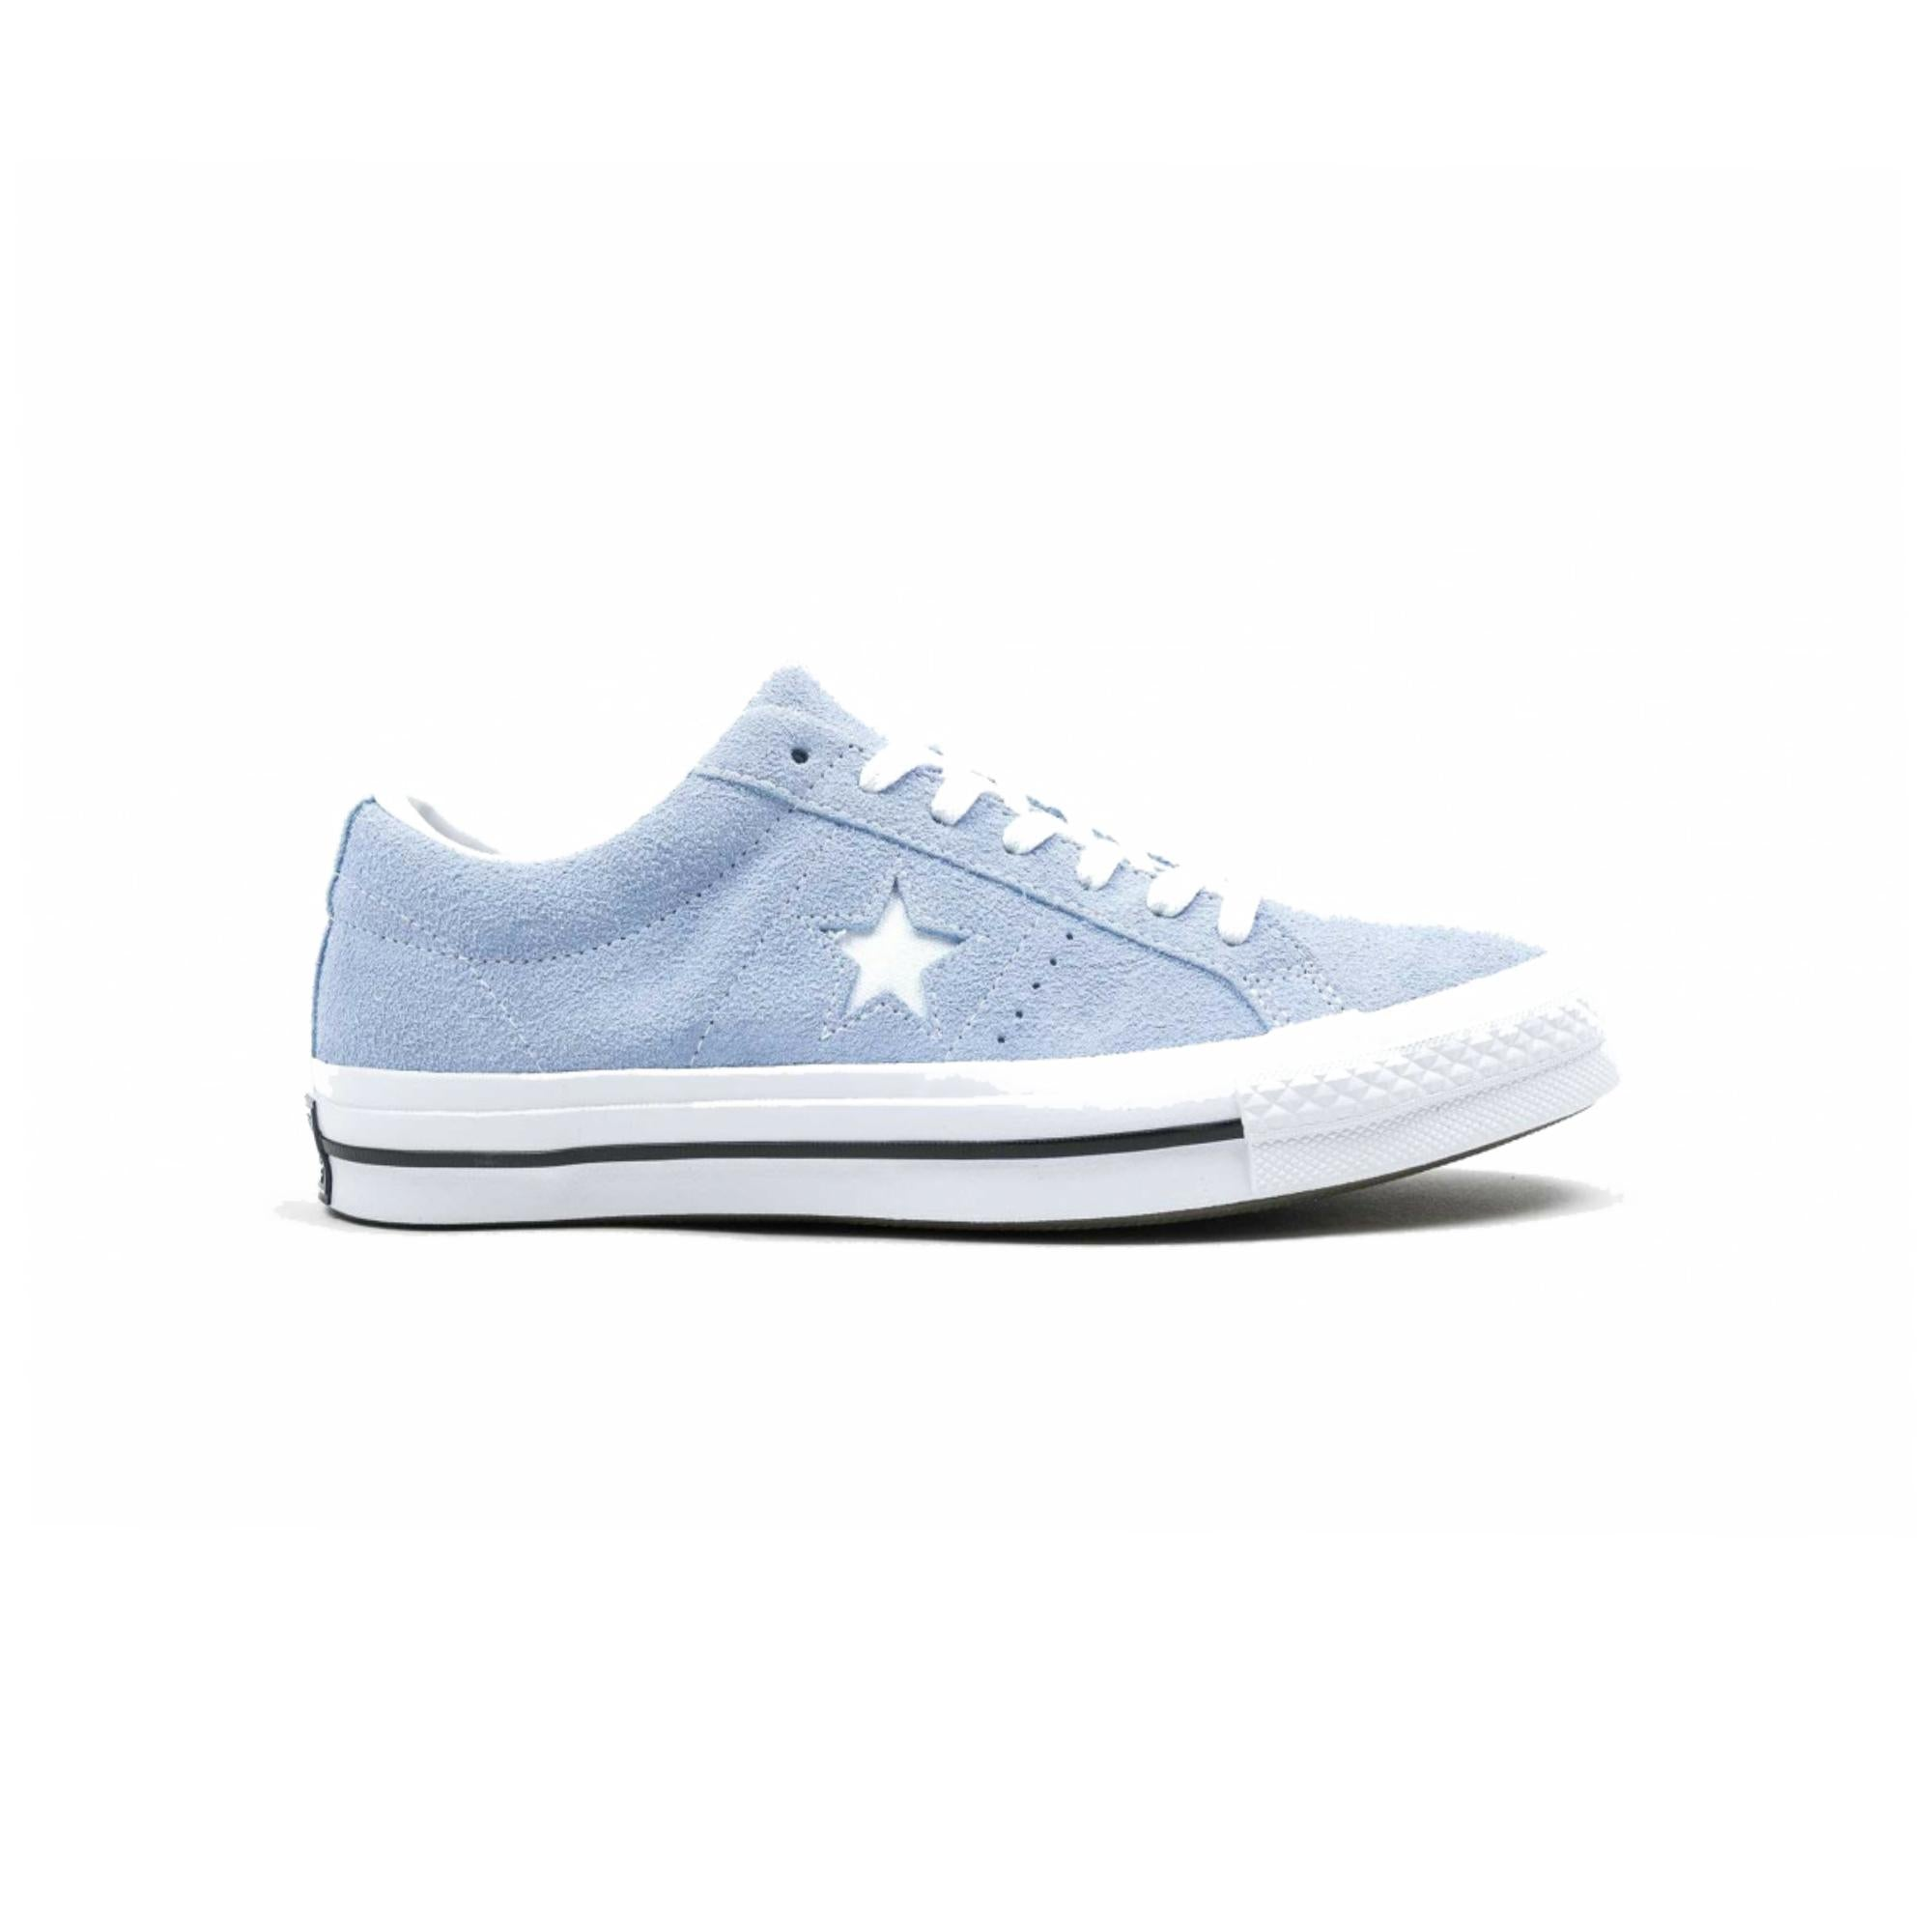 ONE STAR OX BLUE CHILL/WHITE/BLACK 159768C